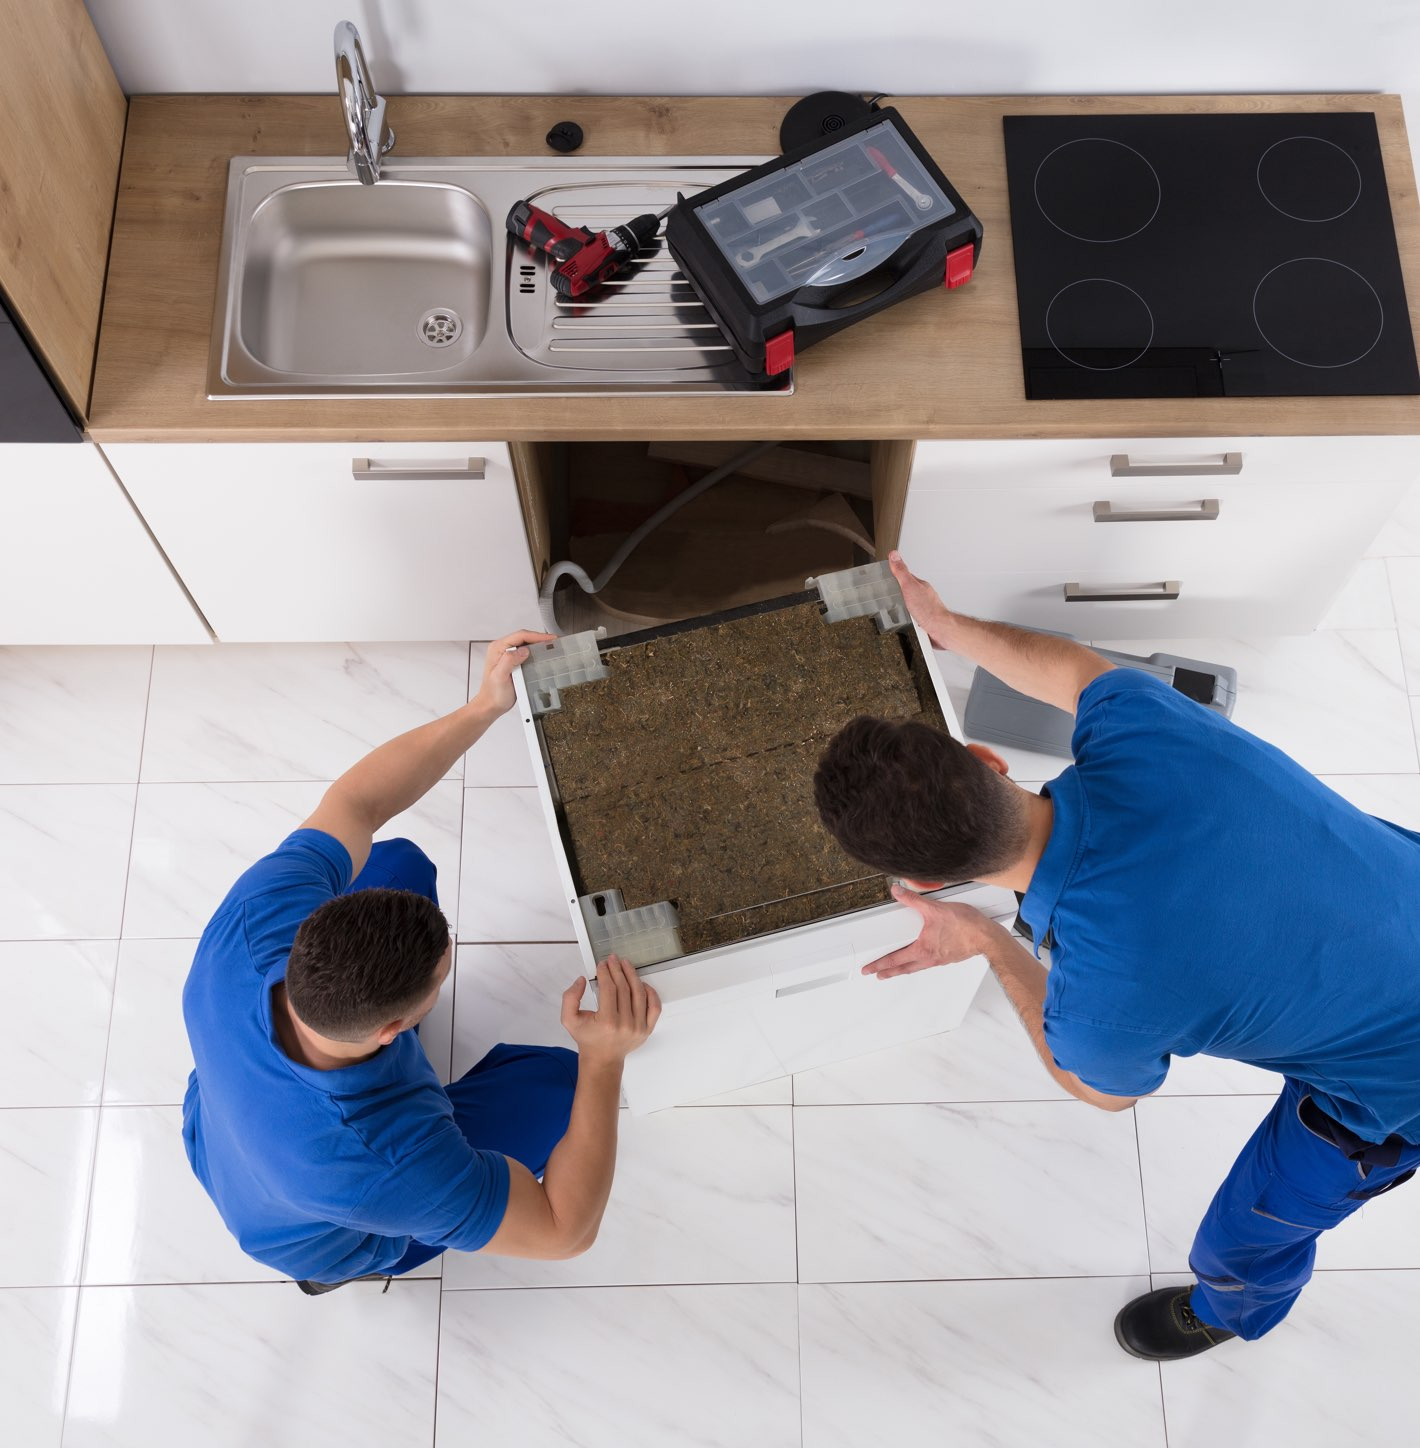 Two male workers in blue uniforms installing a dishwasher in a home